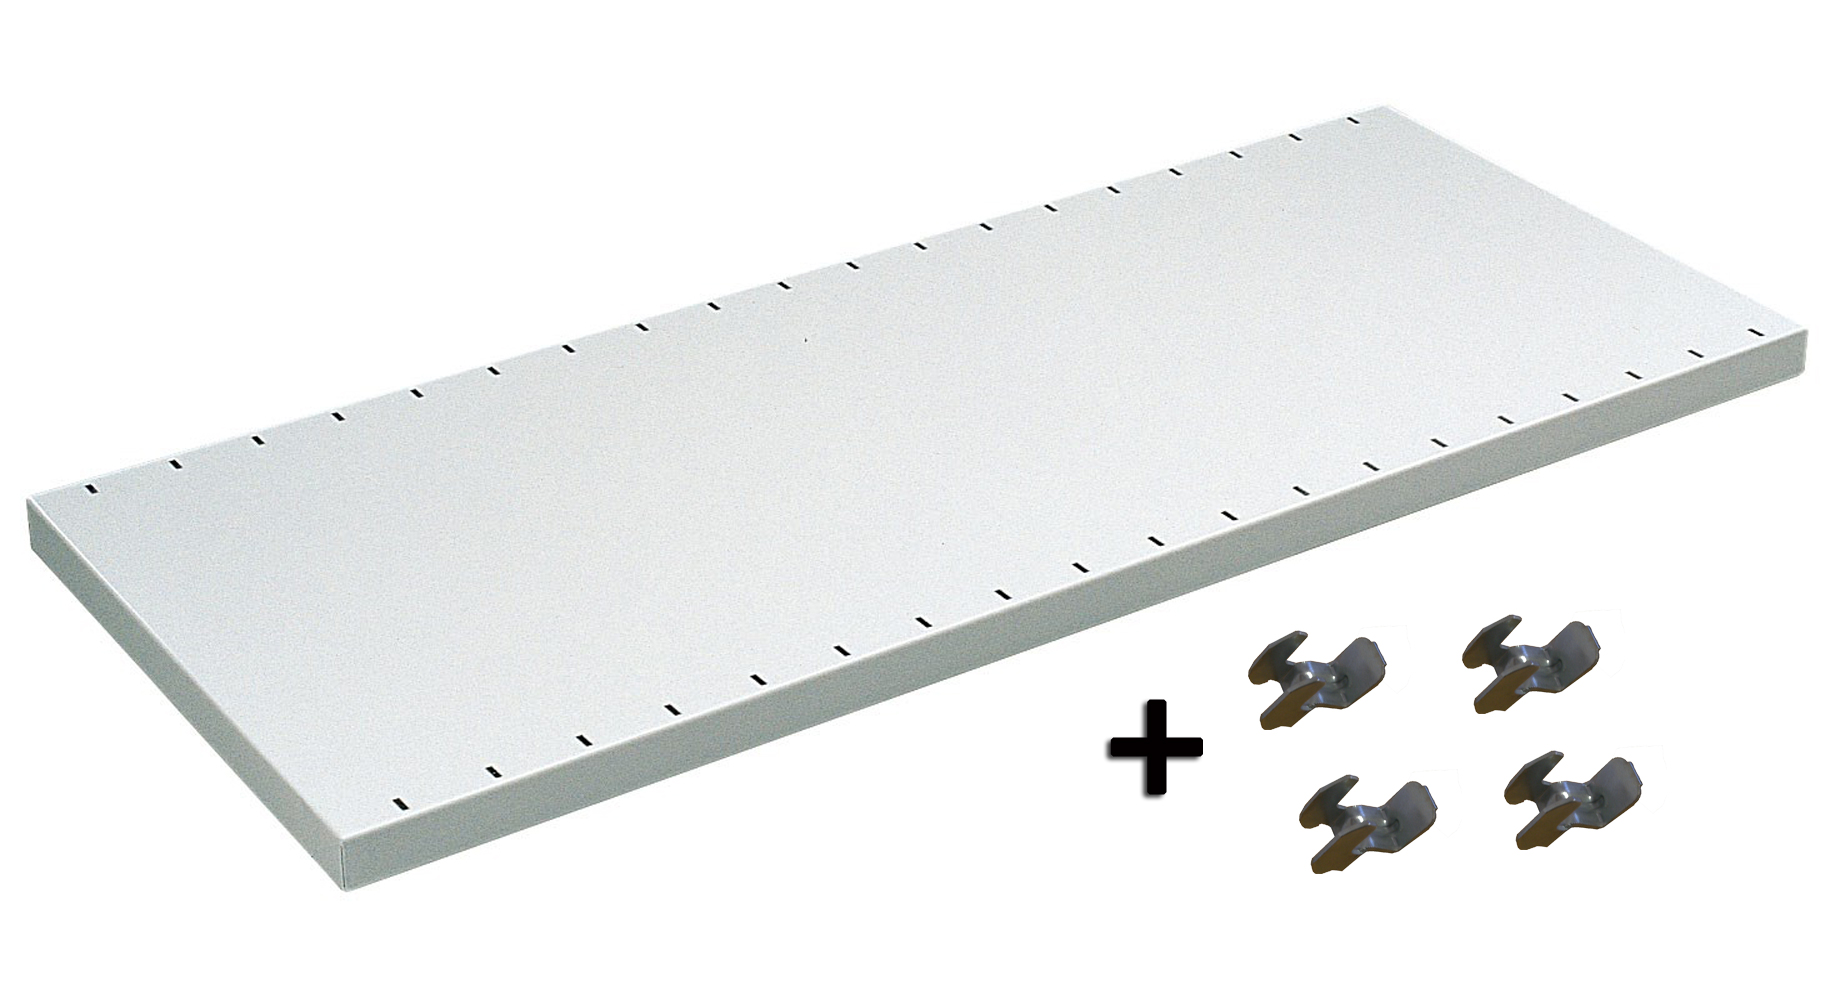 Tablette rayonnage Universel peint L.970 x P.350 mm charge 110 kg